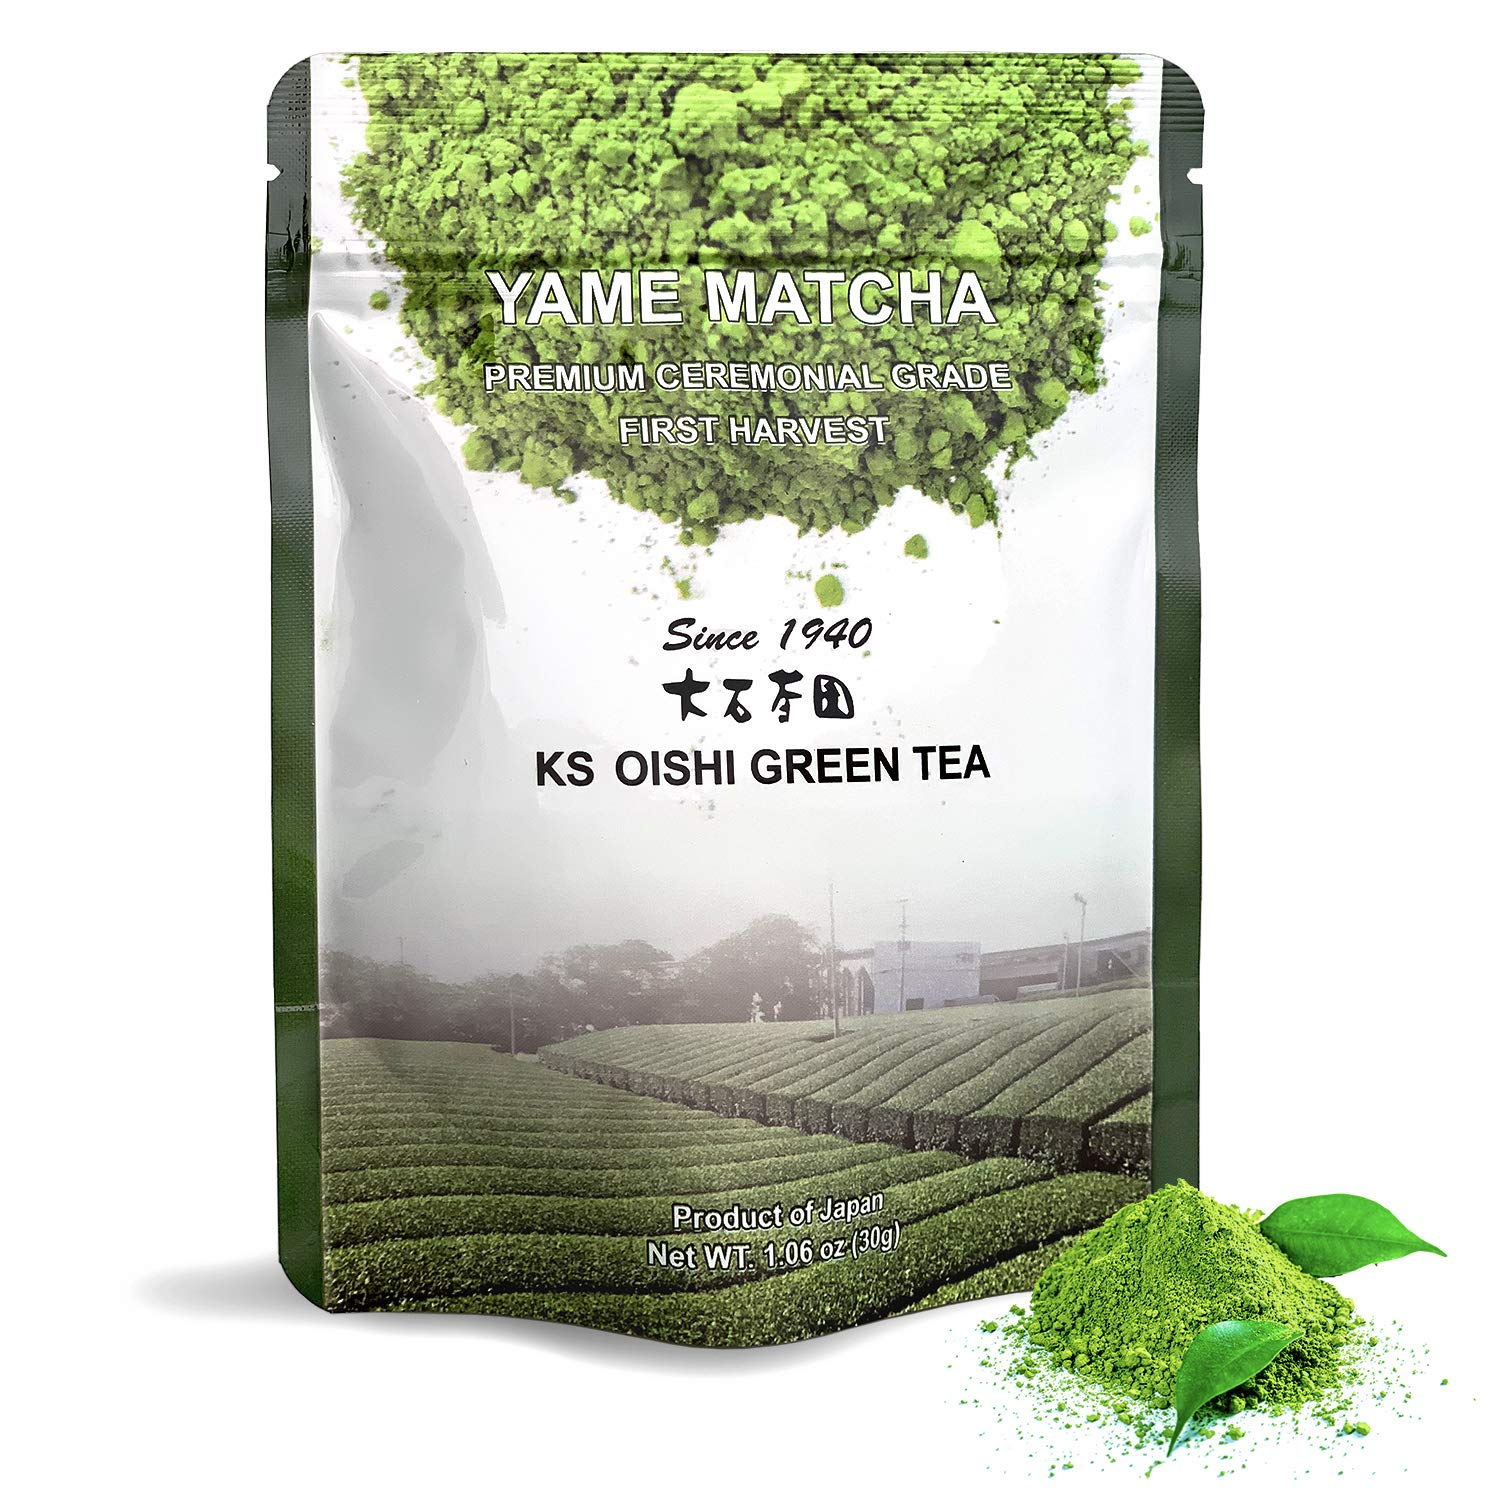 Matcha Green Tea Powder Award Winning 100% Authentic Japanese First Harvest Ceremonial Tea Yame Matcha Premium Green Tea Powder 30g bag